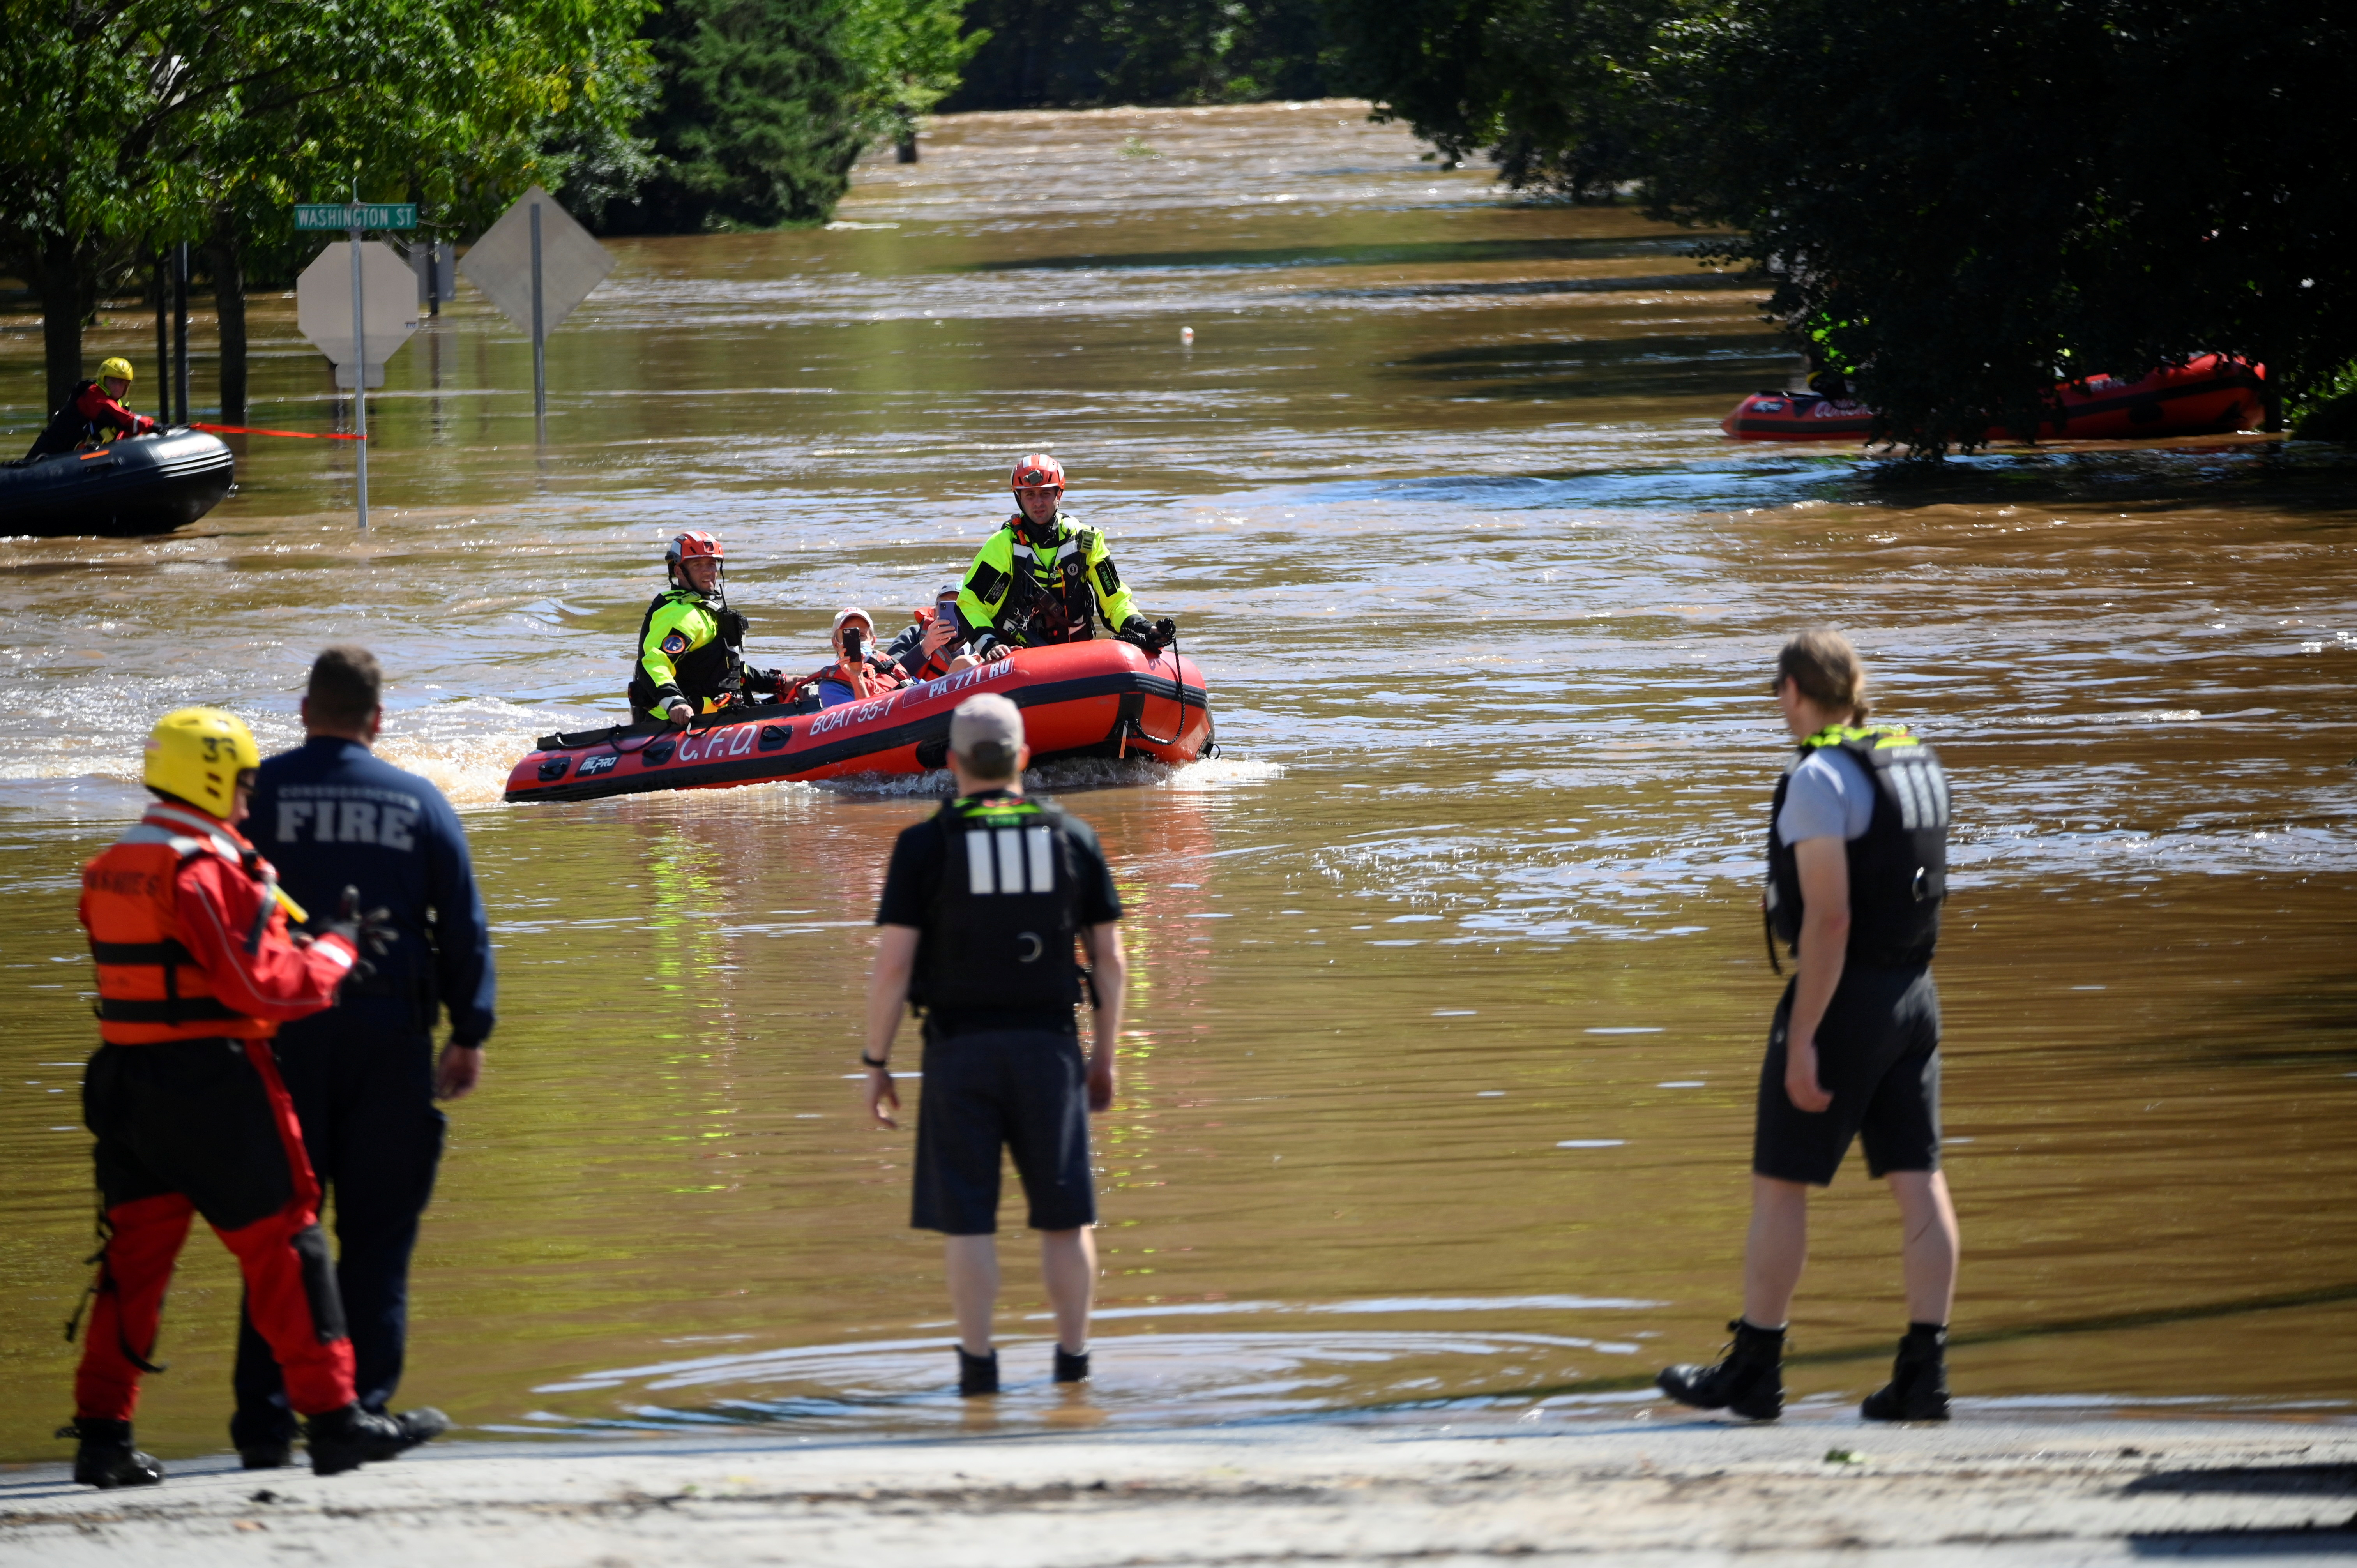 Emergency personnel conduct rescues for people trapped by floodwaters caused by the remnants of Tropical Storm Ida in Conshohocken, Pennsylvania, U.S., September 2, 2021. REUTERS/Bastiaan Slabbers